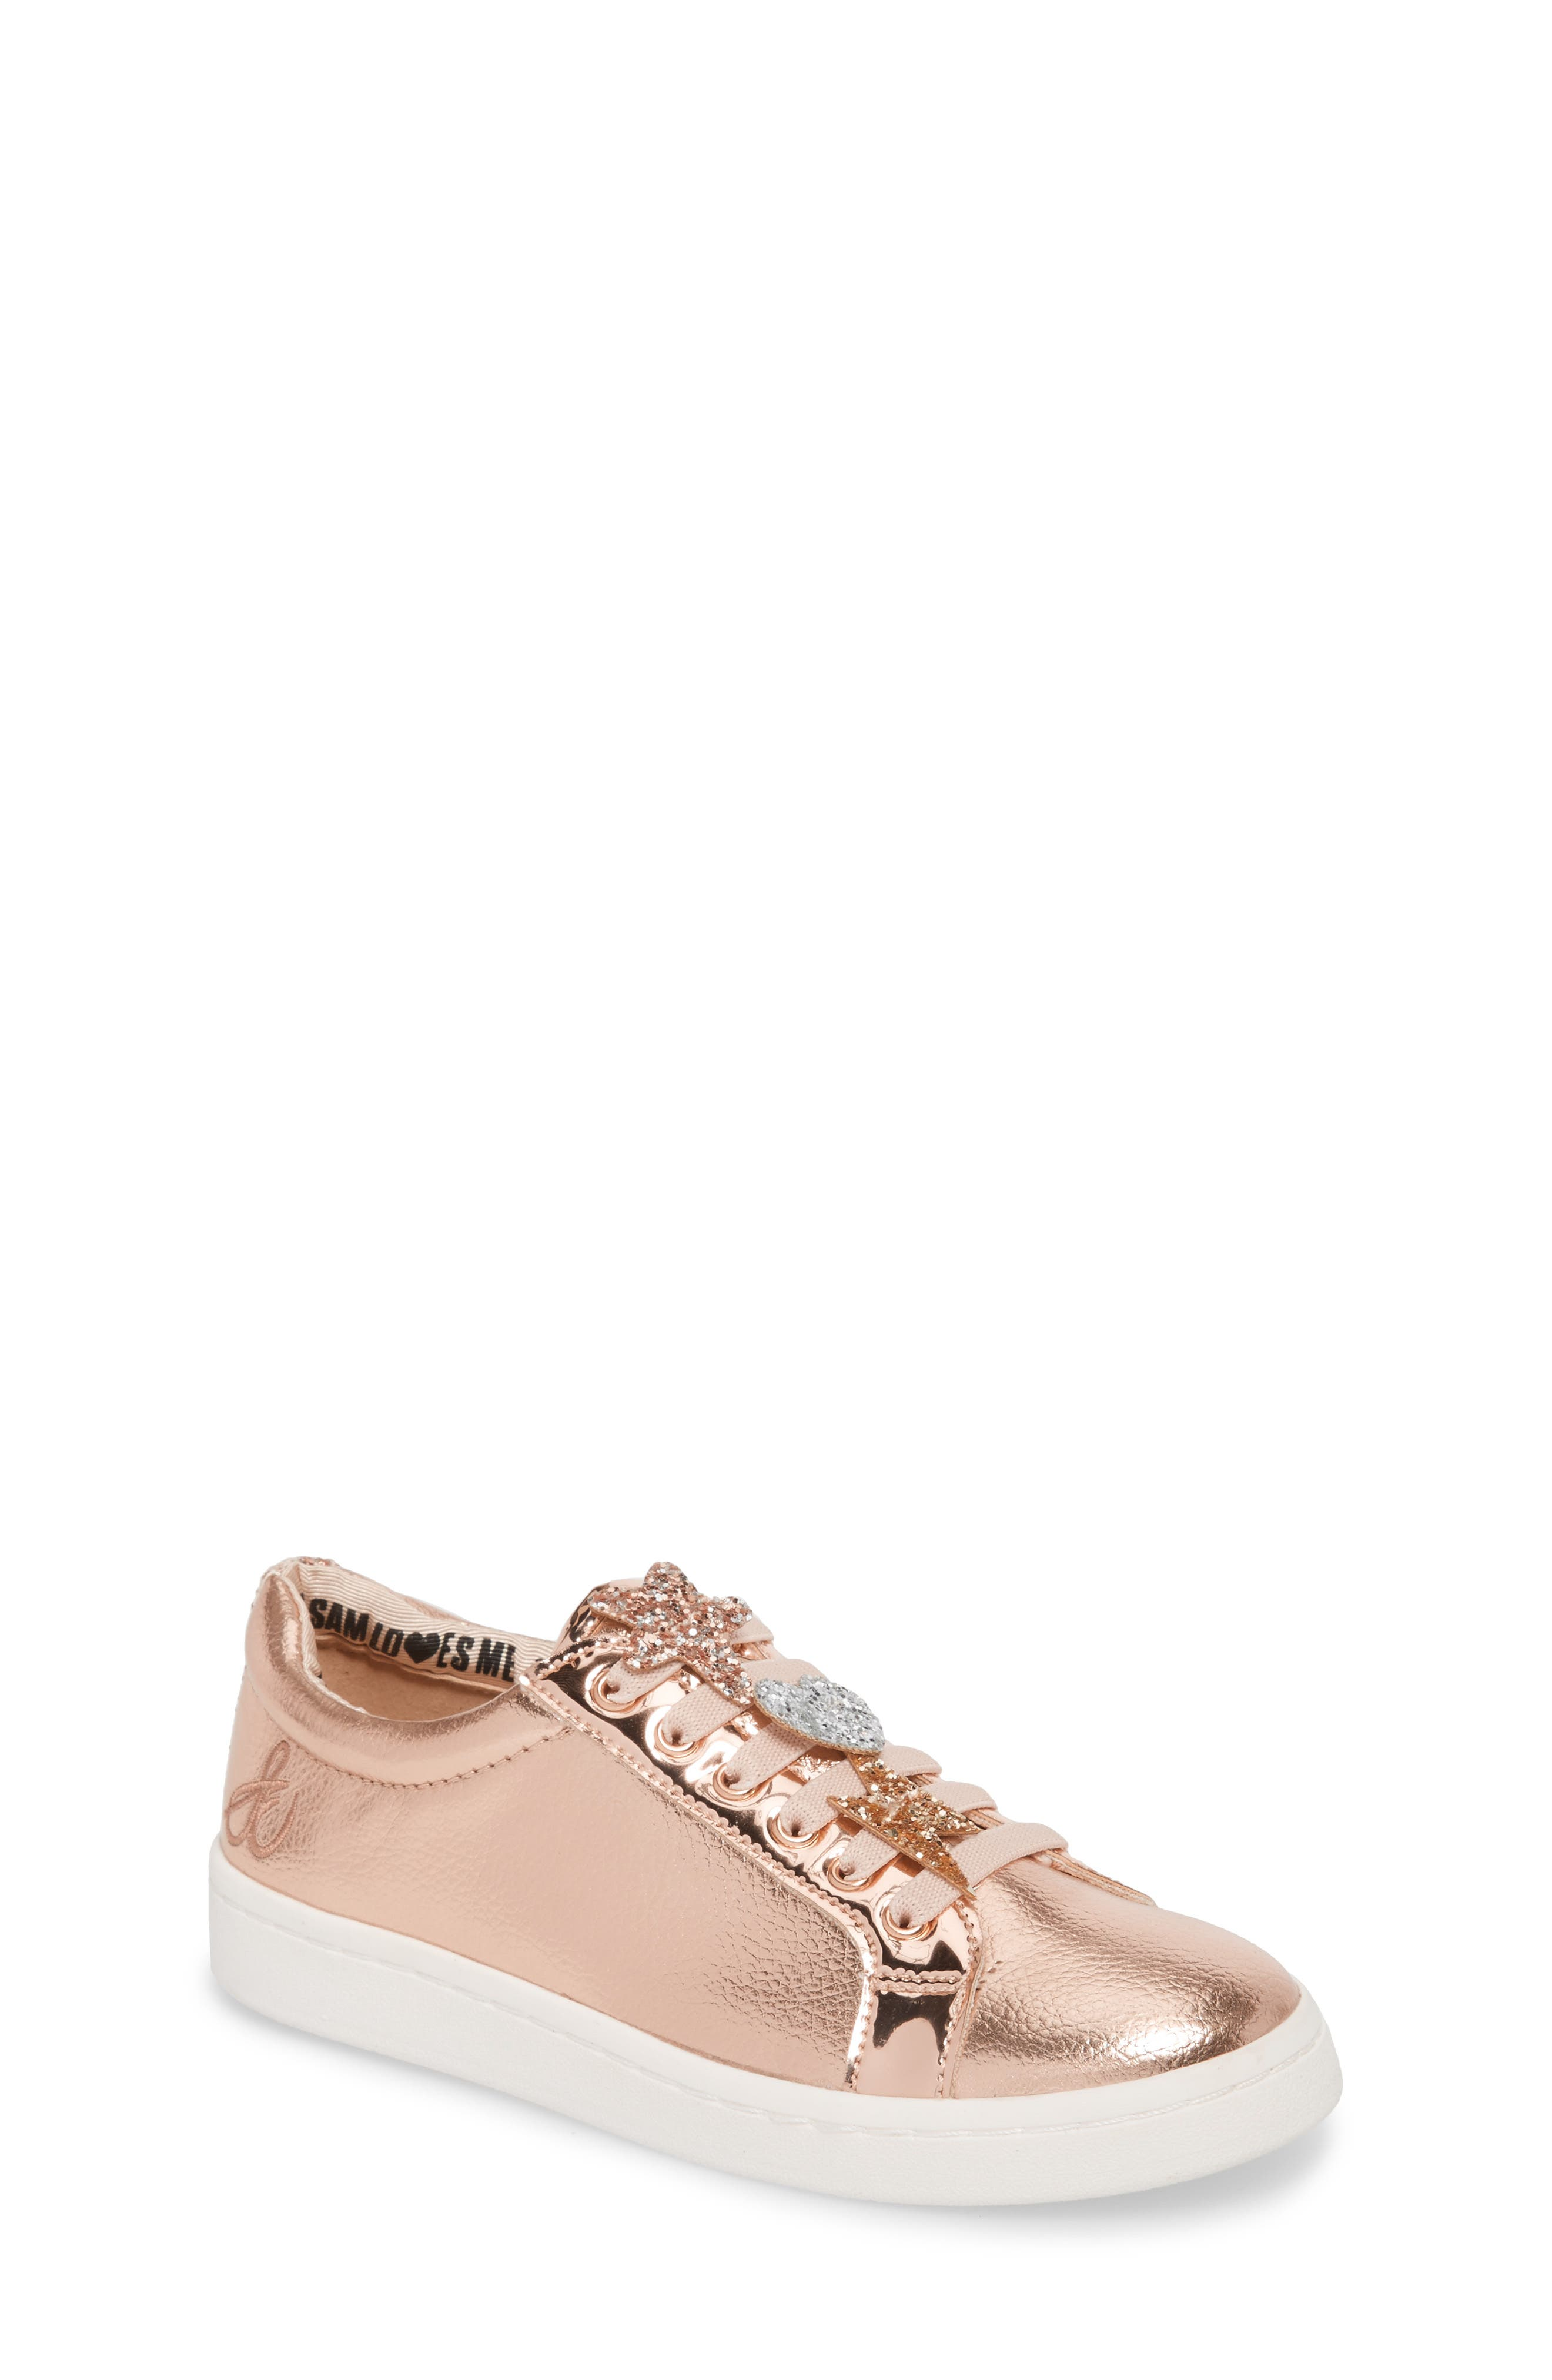 Blane Sammie Slip-On Sneaker,                             Main thumbnail 1, color,                             Rose Gold Faux Leather